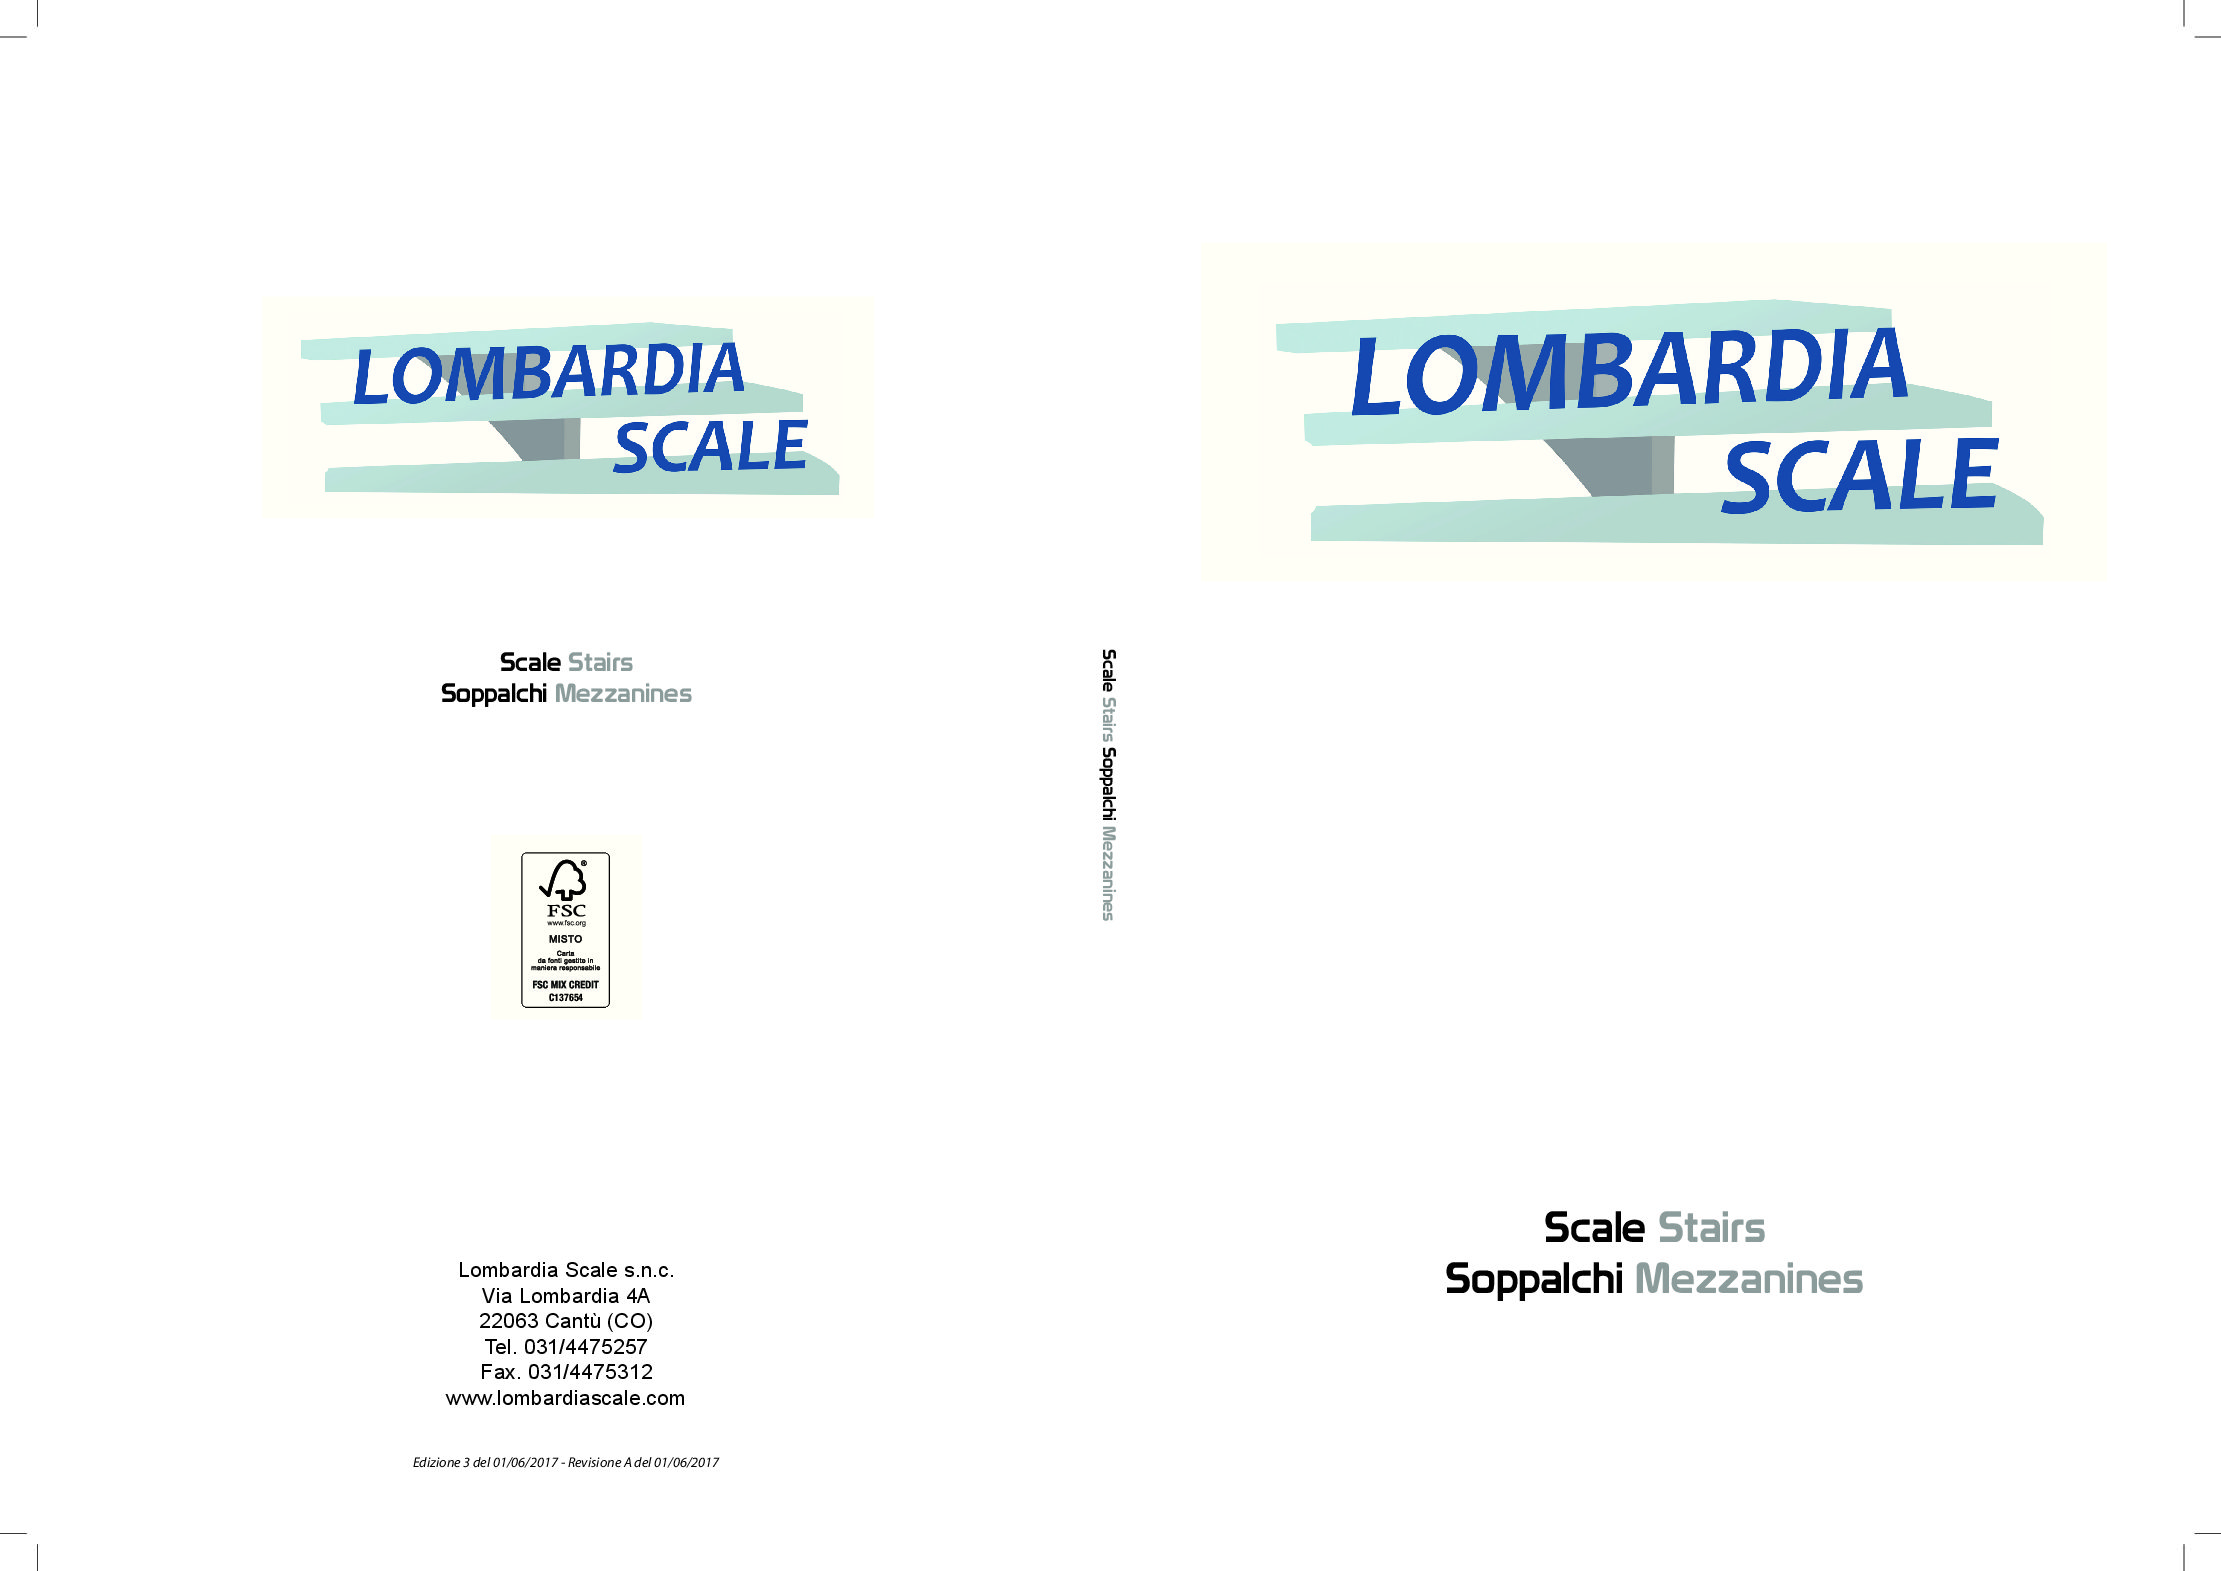 LOMBARDIA SCALE